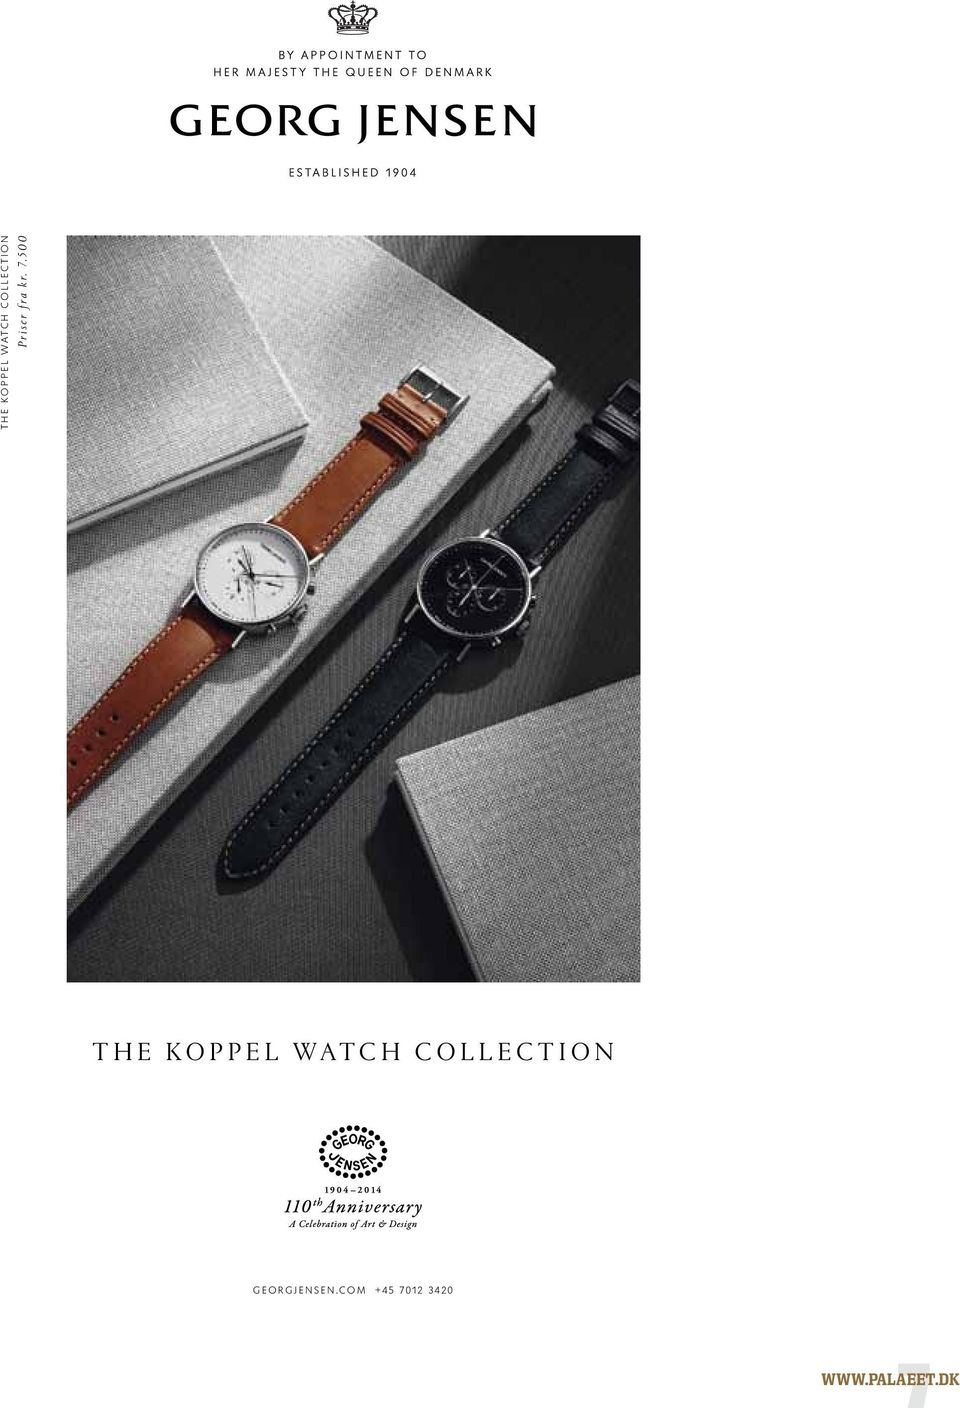 500 THE KOPPEL WATCH COLLECTION